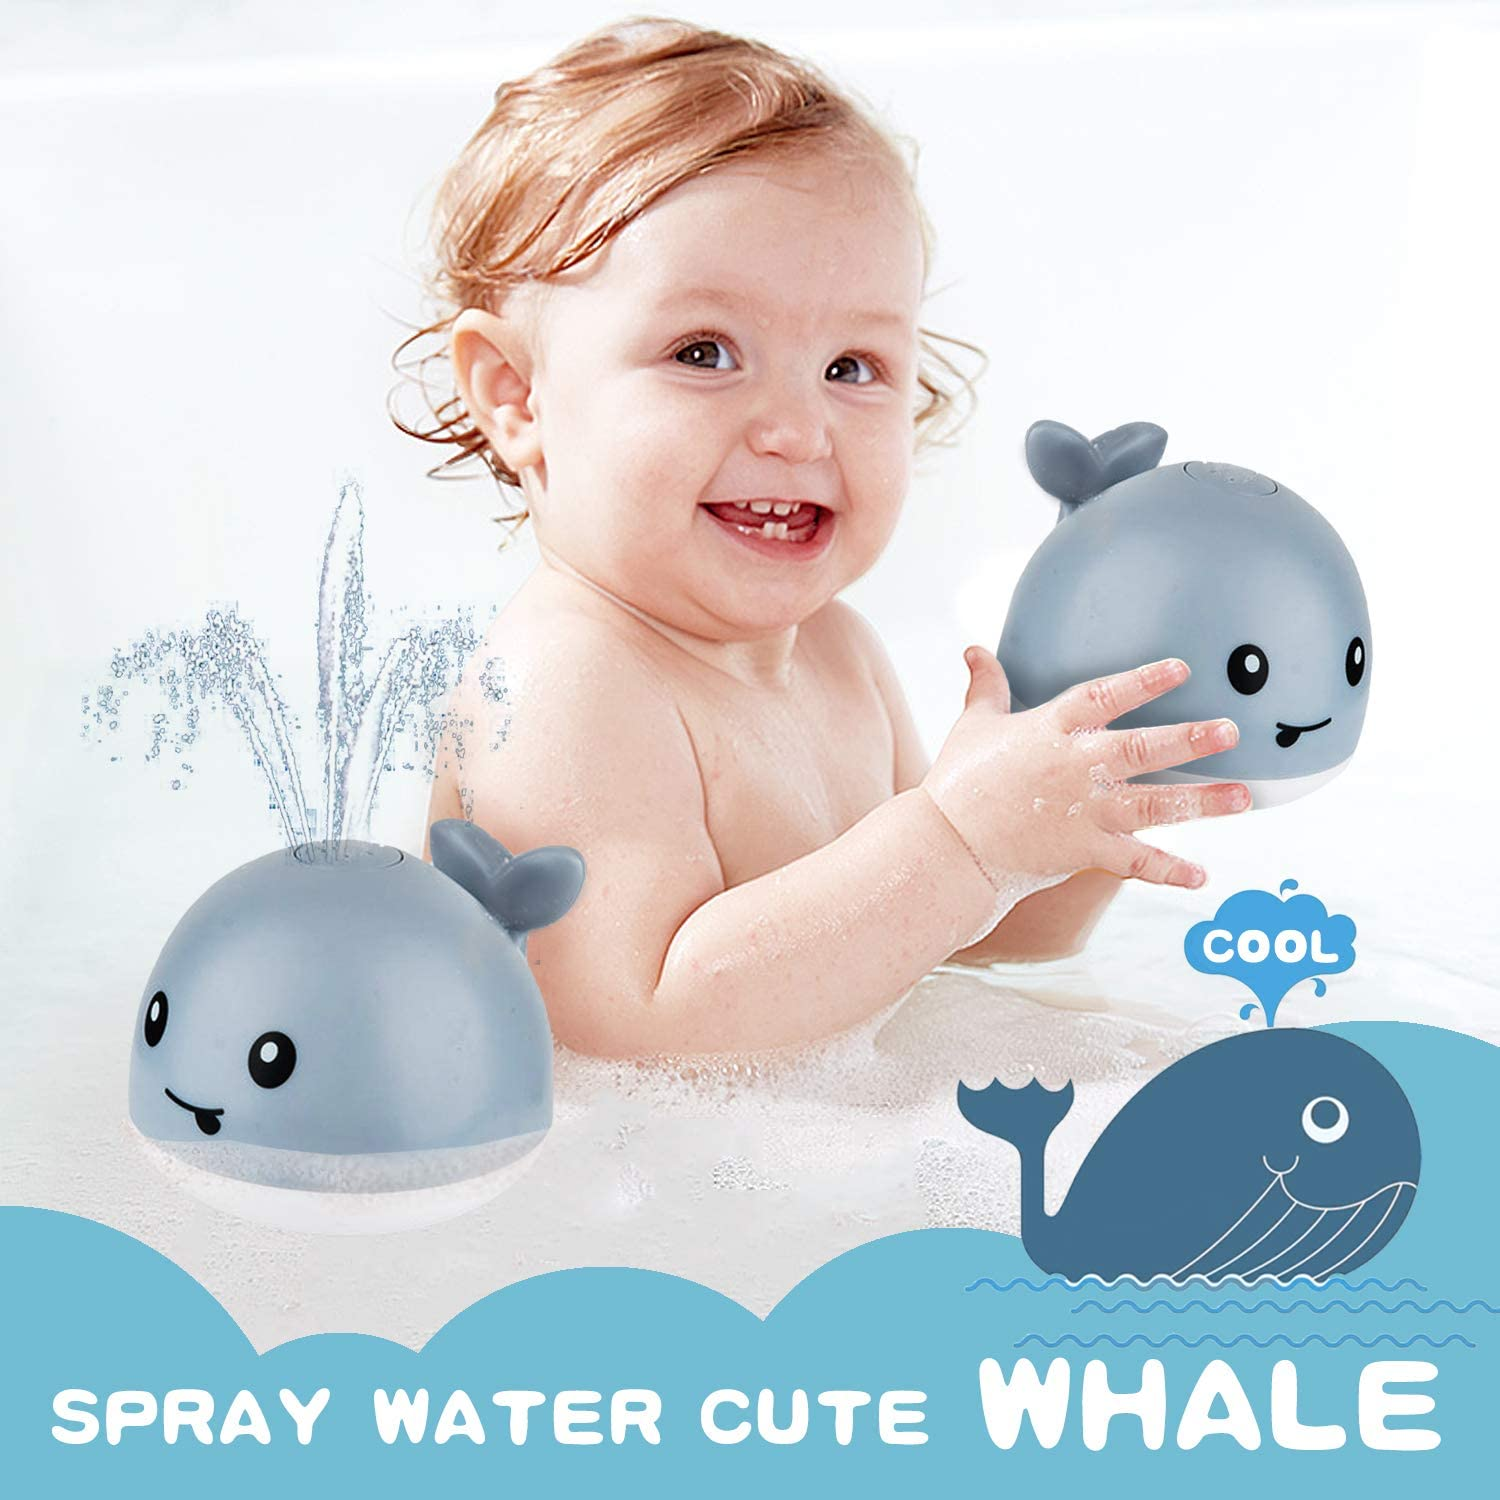 Induction Sprinkler Bathtub Shower Toys for Toddlers Kids Boys Girls ZHENDUO Baby Bath Toys Pool Bathroom Toy for Baby Gray Whale Automatic Spray Water Bath Toy with LED Light